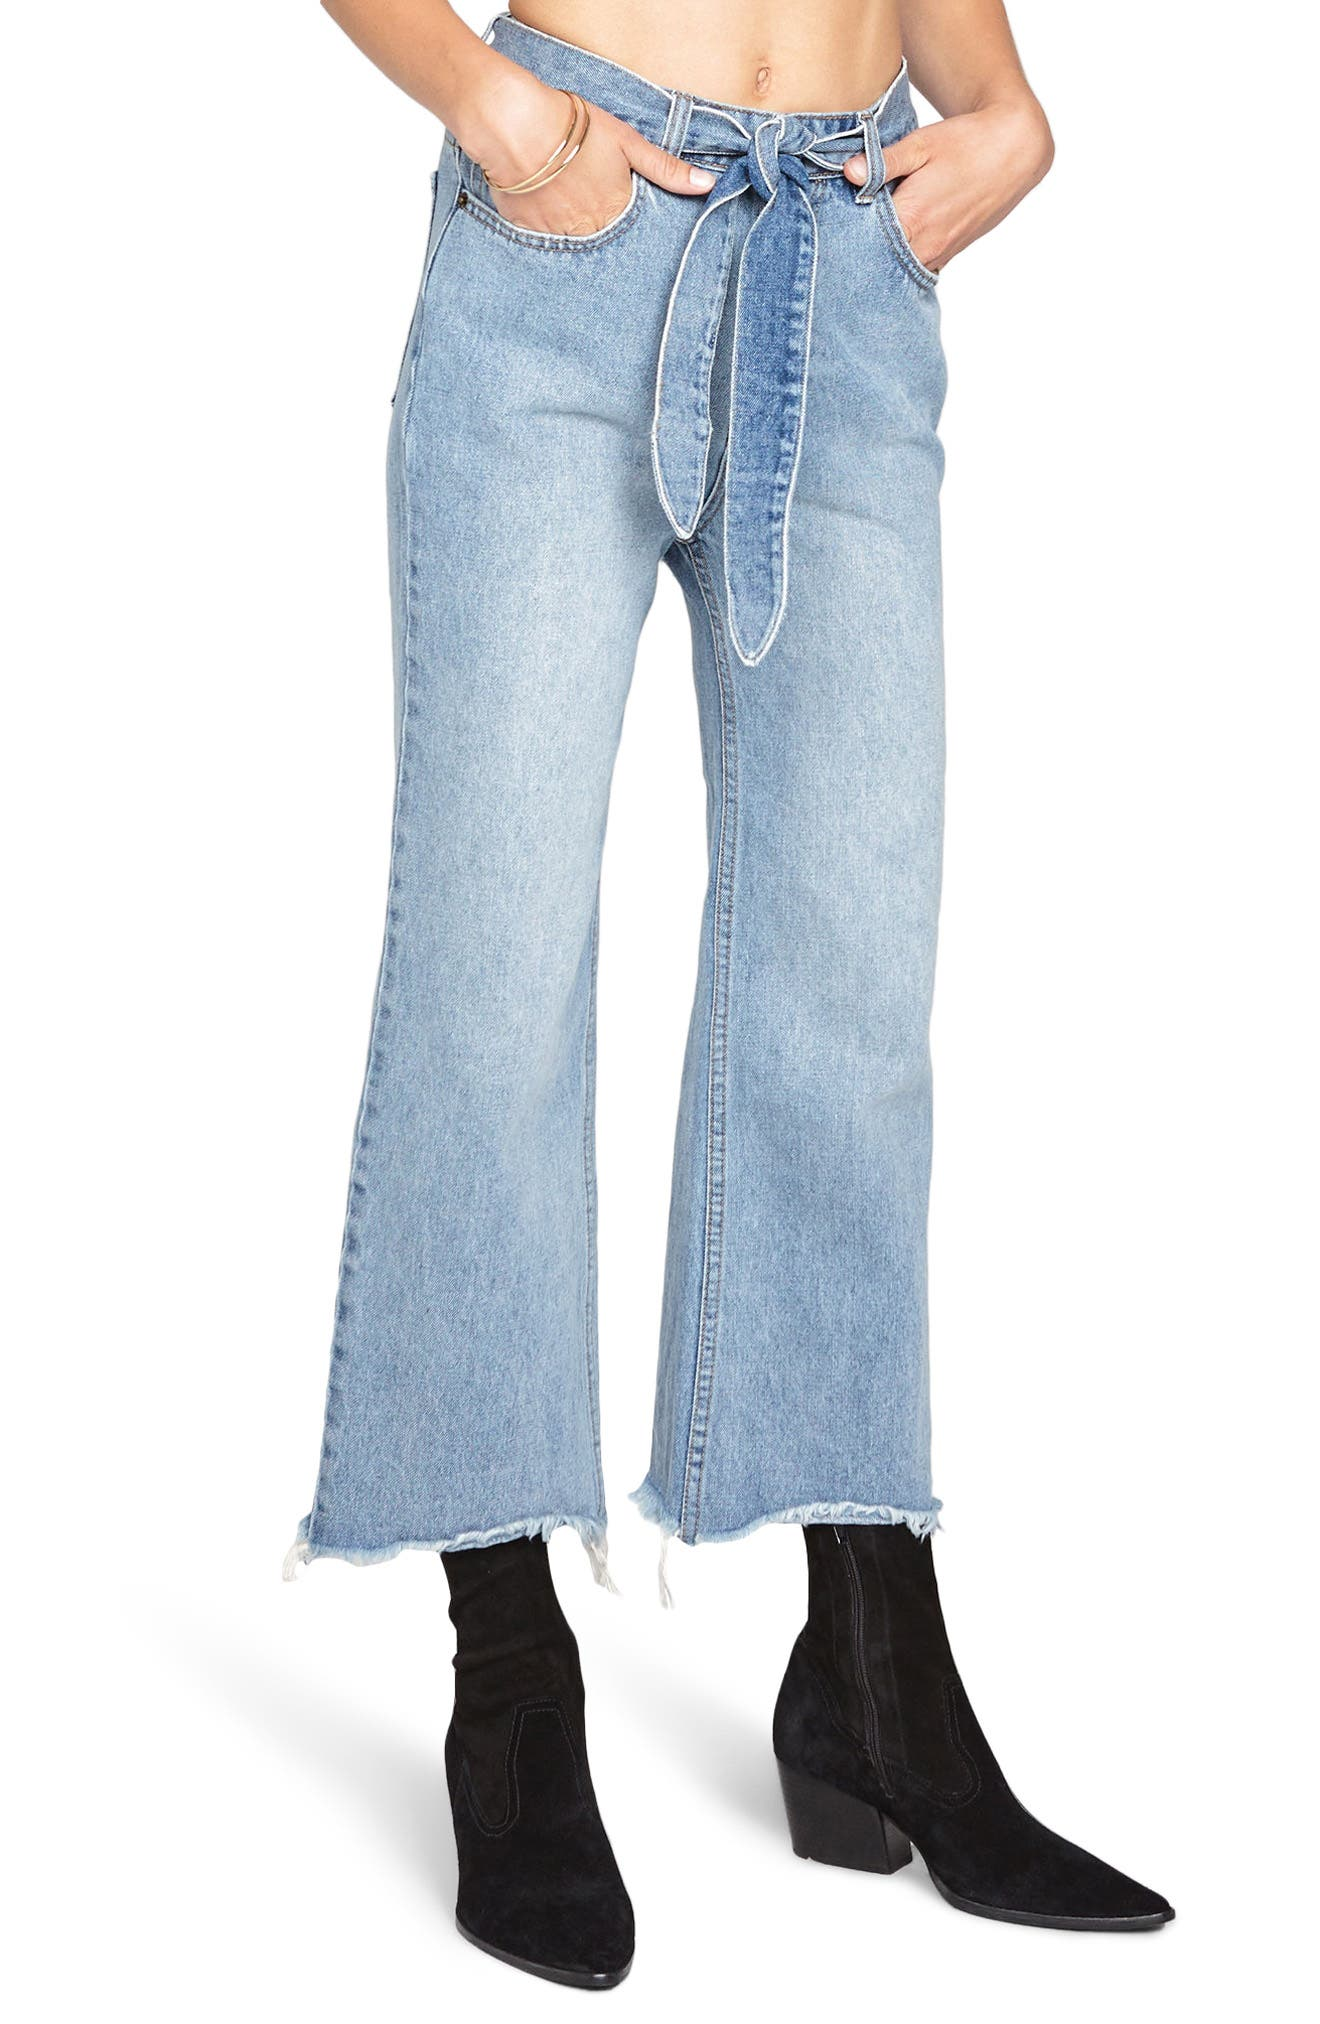 All Tied Up Crop Flare Jeans,                         Main,                         color, Faded Vintage Wash